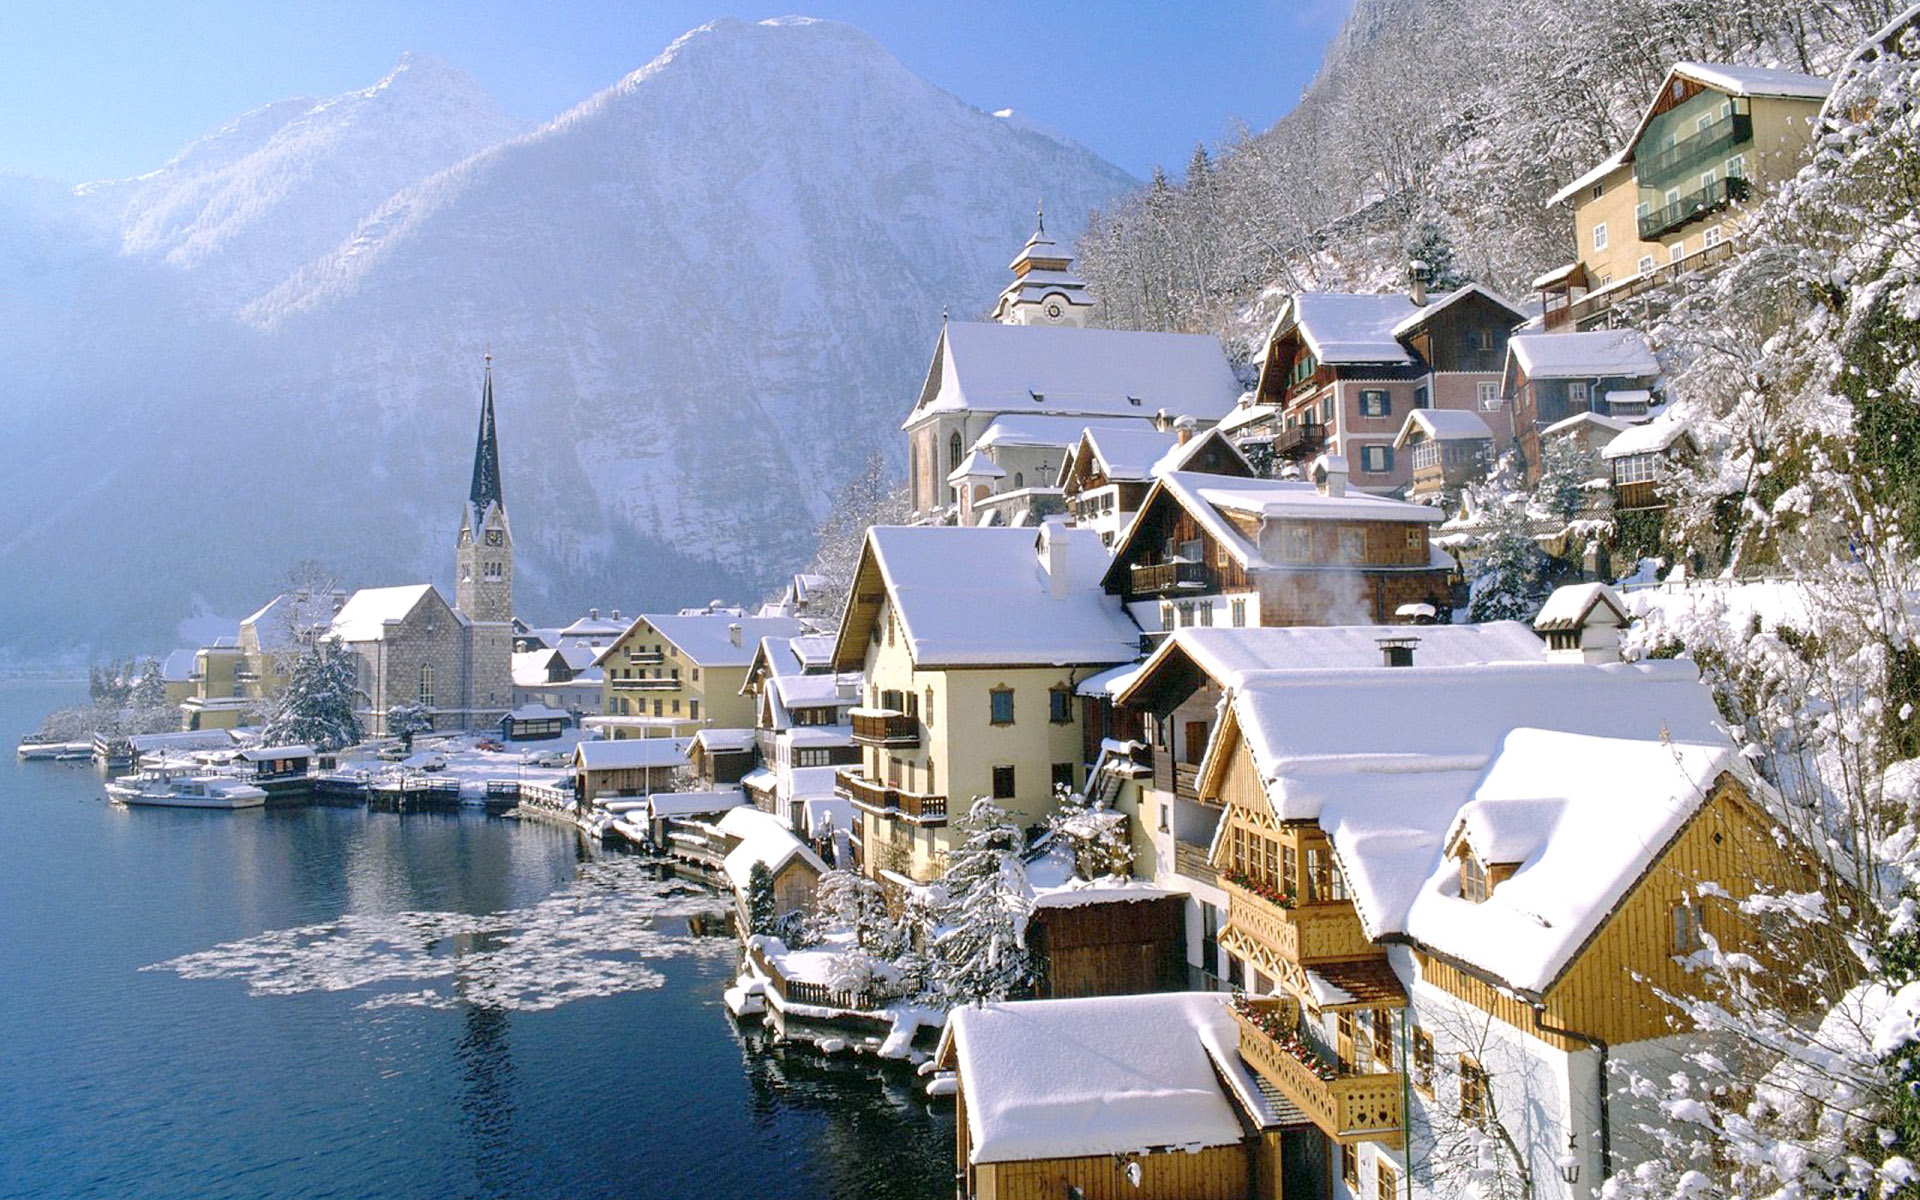 Hallstatt-lake-austria-winter-azbooking